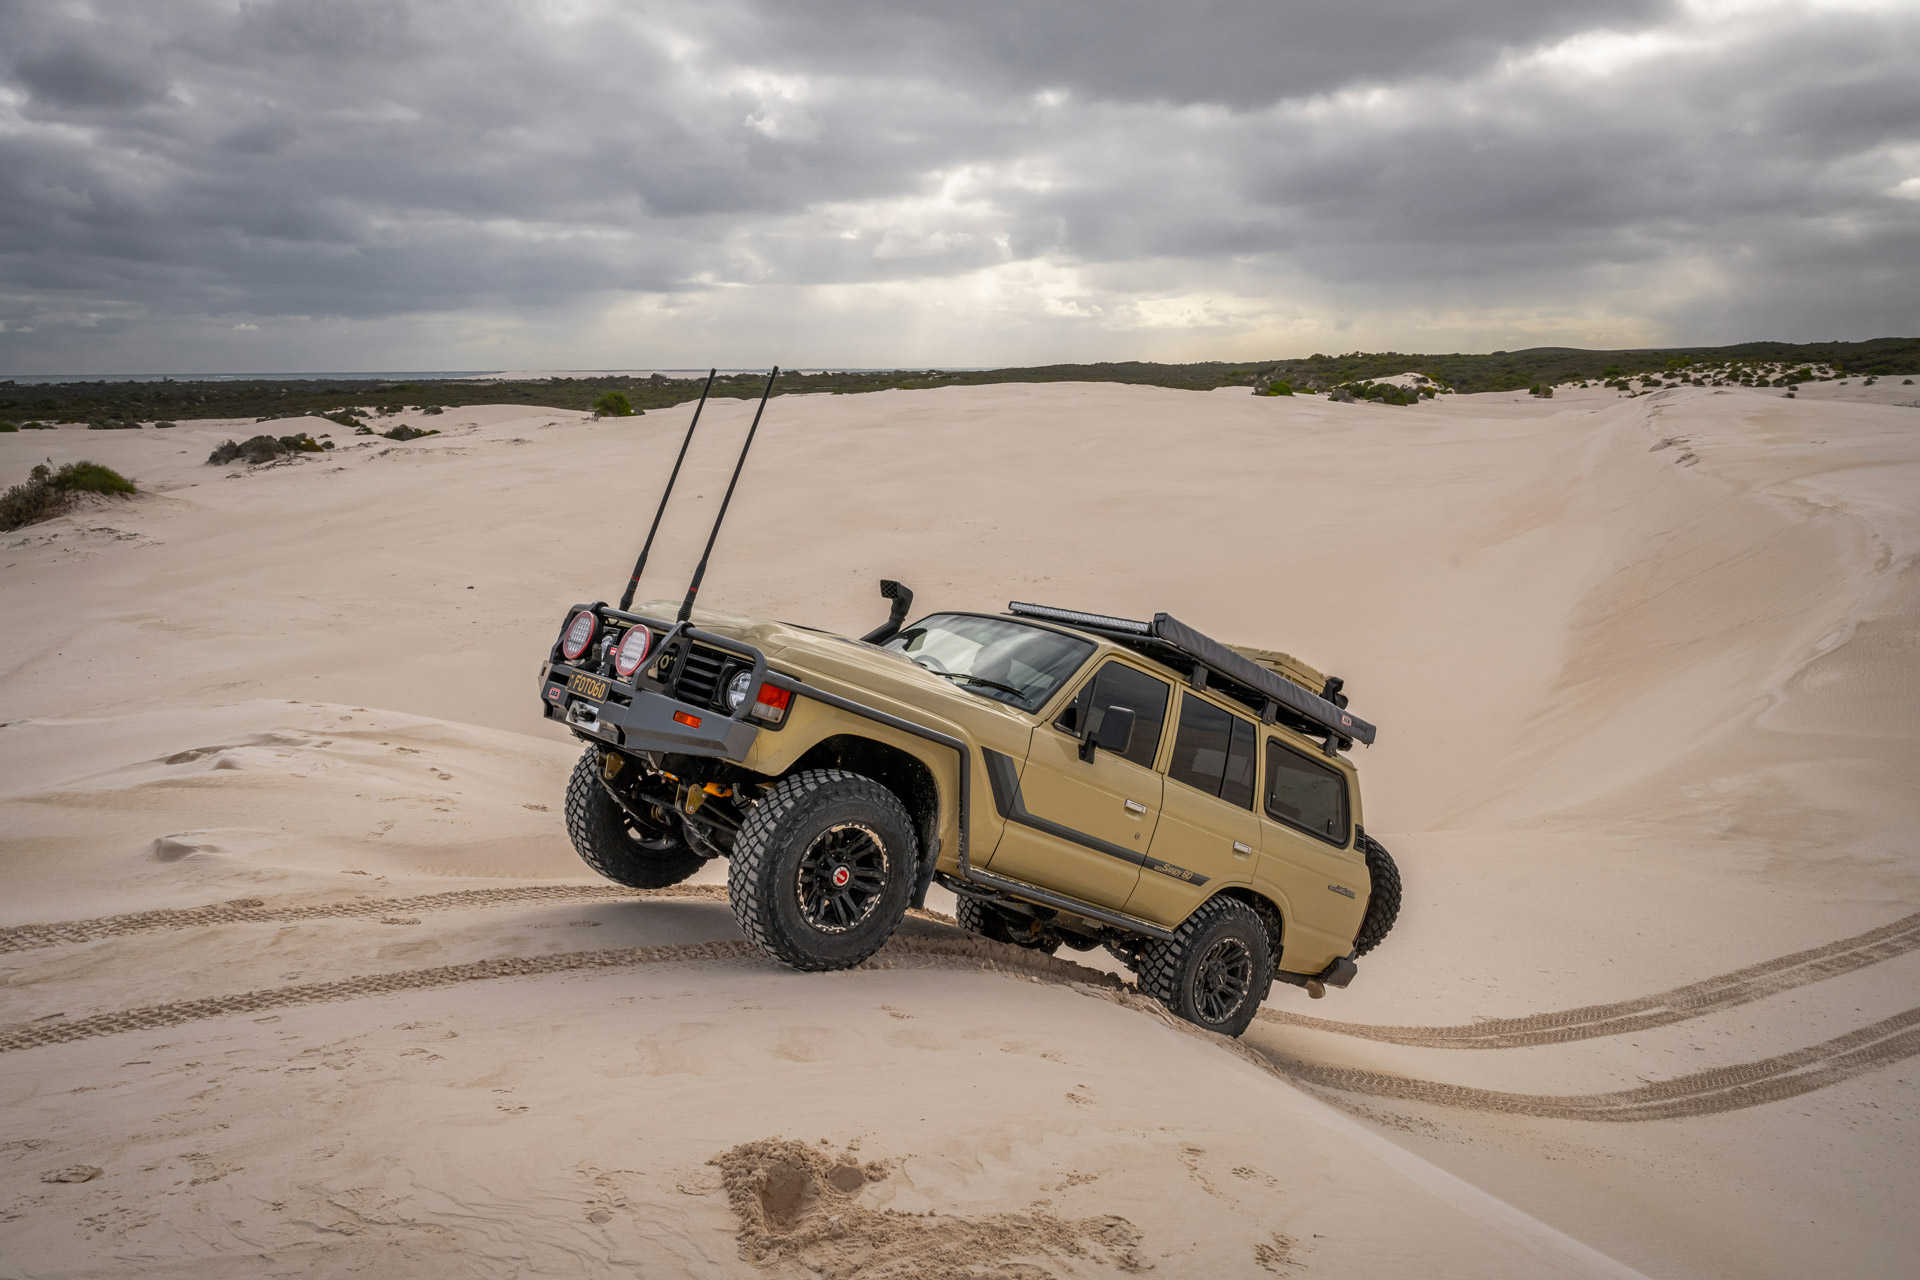 ROH Vapour wheels on Sandy 60 Series LandCruiser getting air on sand dunes